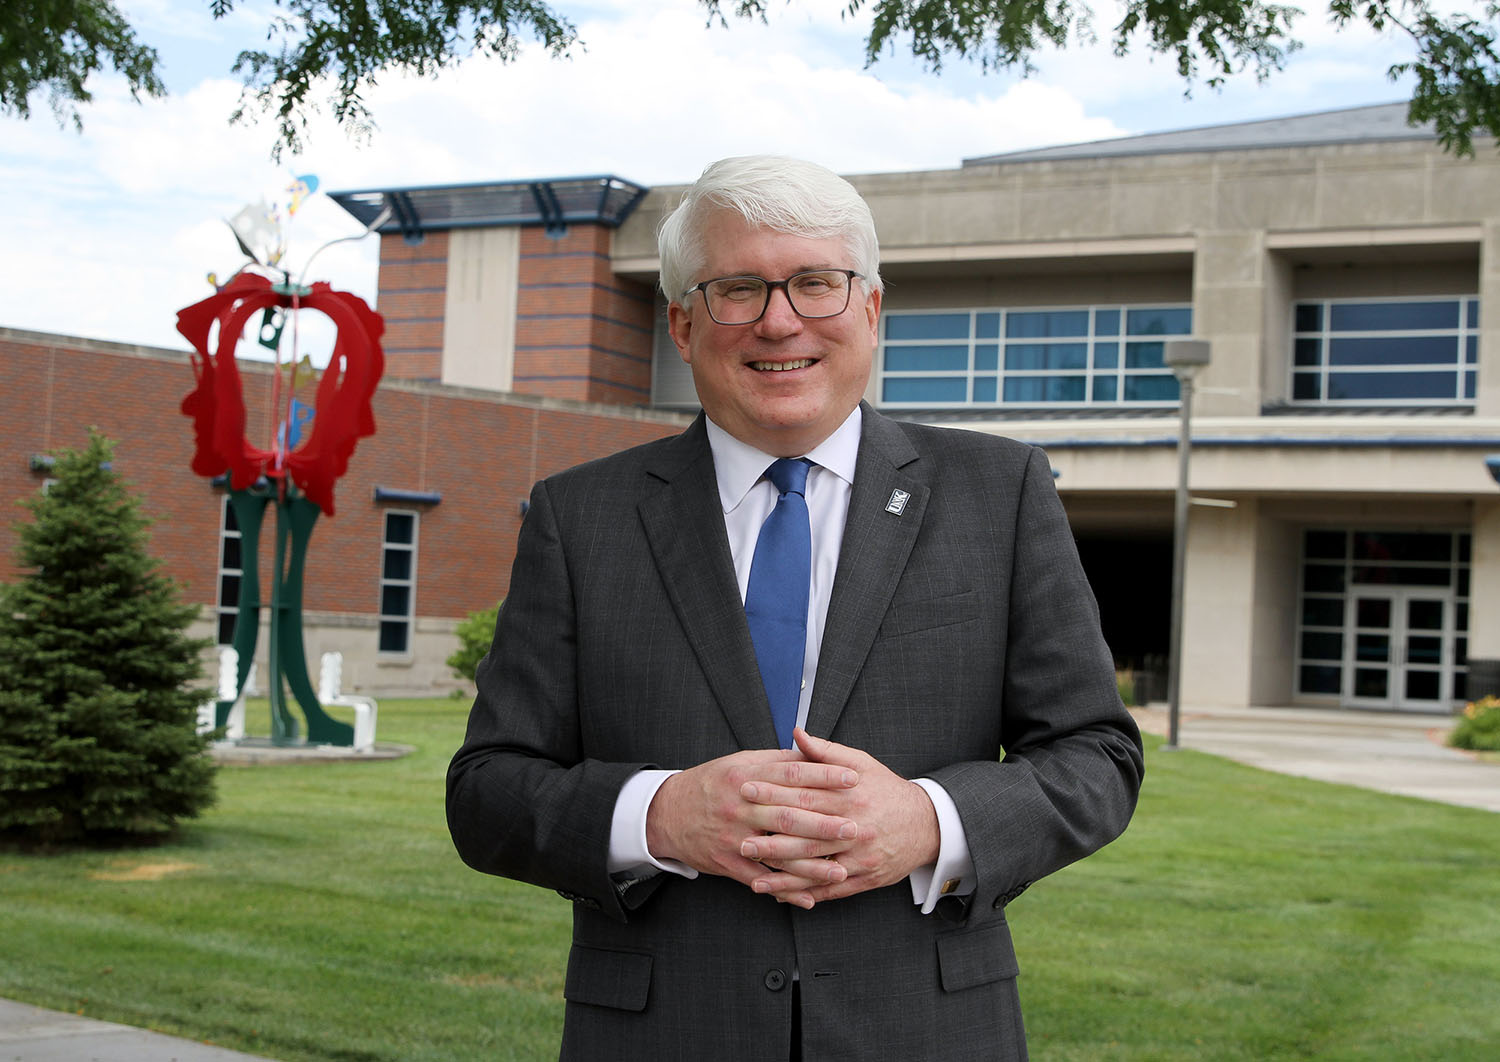 Mark Reid became UNK's new College of Education dean on July 1. He spent the previous 14 years at Texas A&M University-Commerce, serving as associate dean of the College of Education and Human Services since 2015.